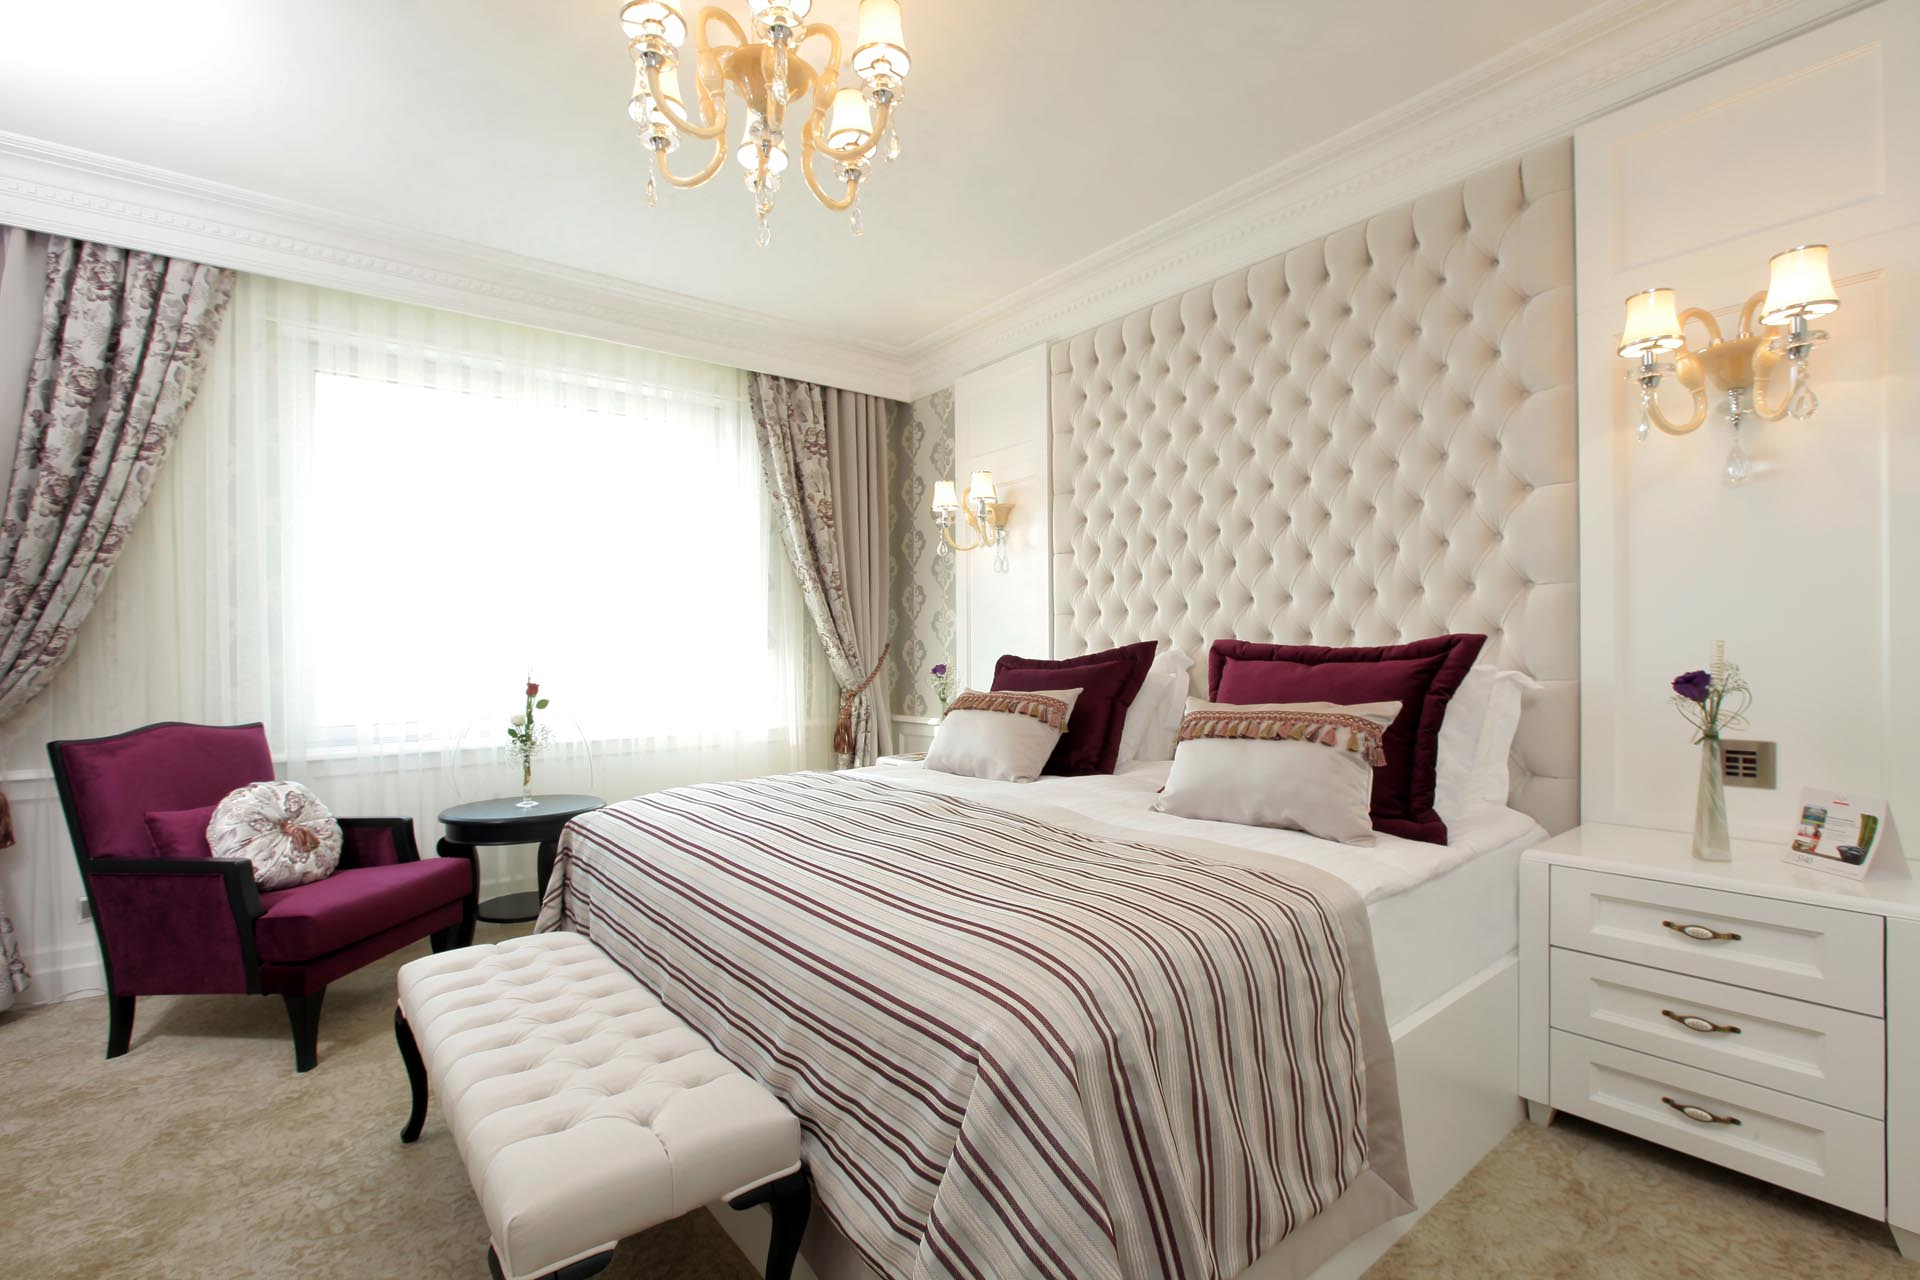 King Corner Suite with King size bed at WOW Istanbul Hotel